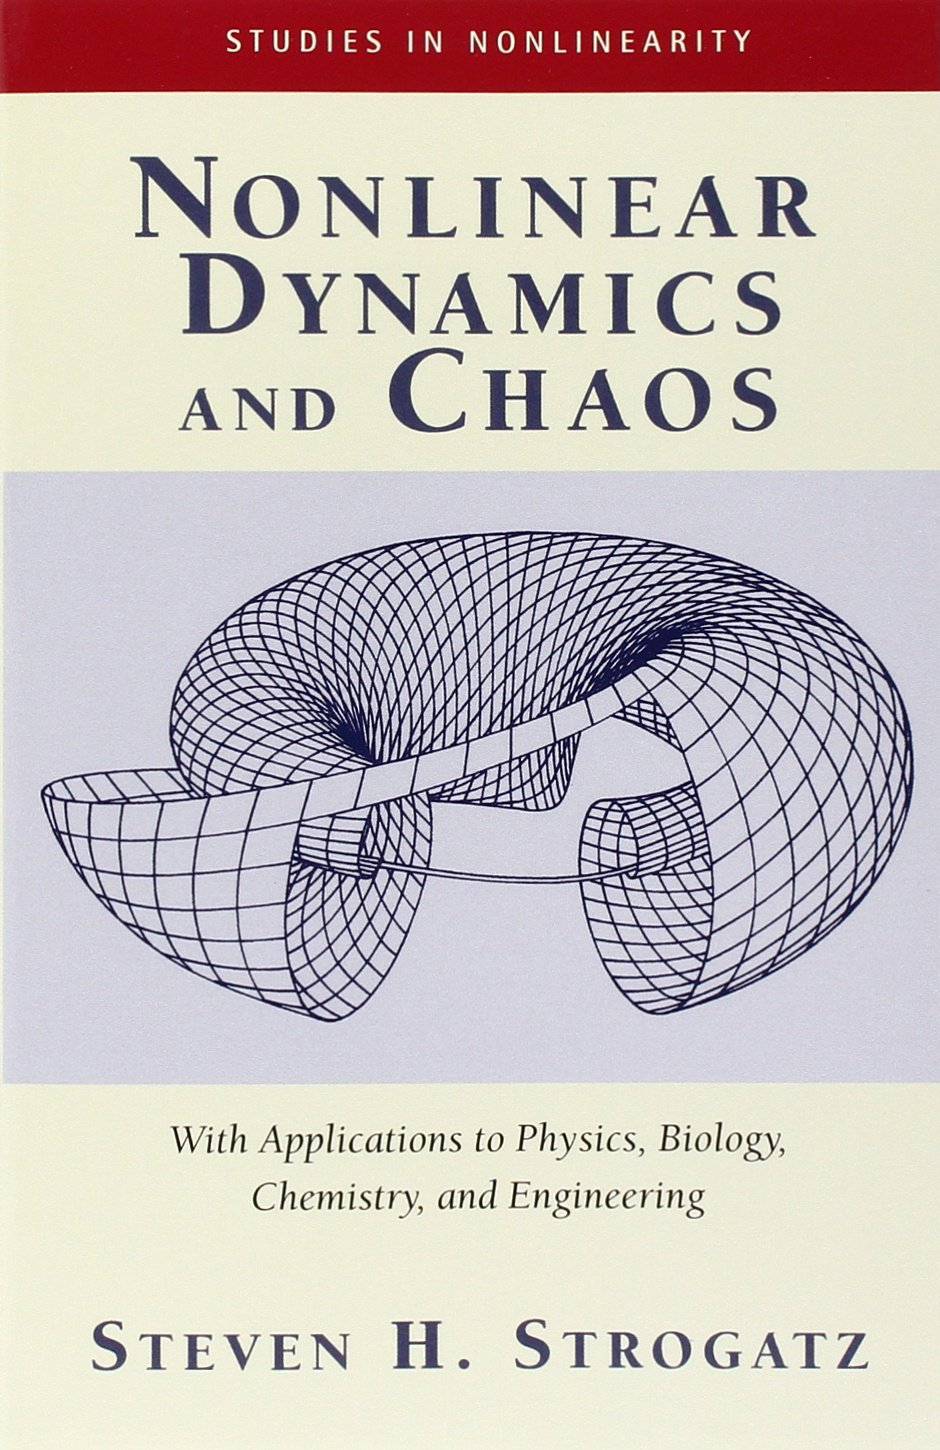 Nonlinear Dynamics And Chaos: With Applications To Physics, Biology,  Chemistry, And Engineering: Steven H. Strogatz: 9780738204536: Biology:  Amazon Canada